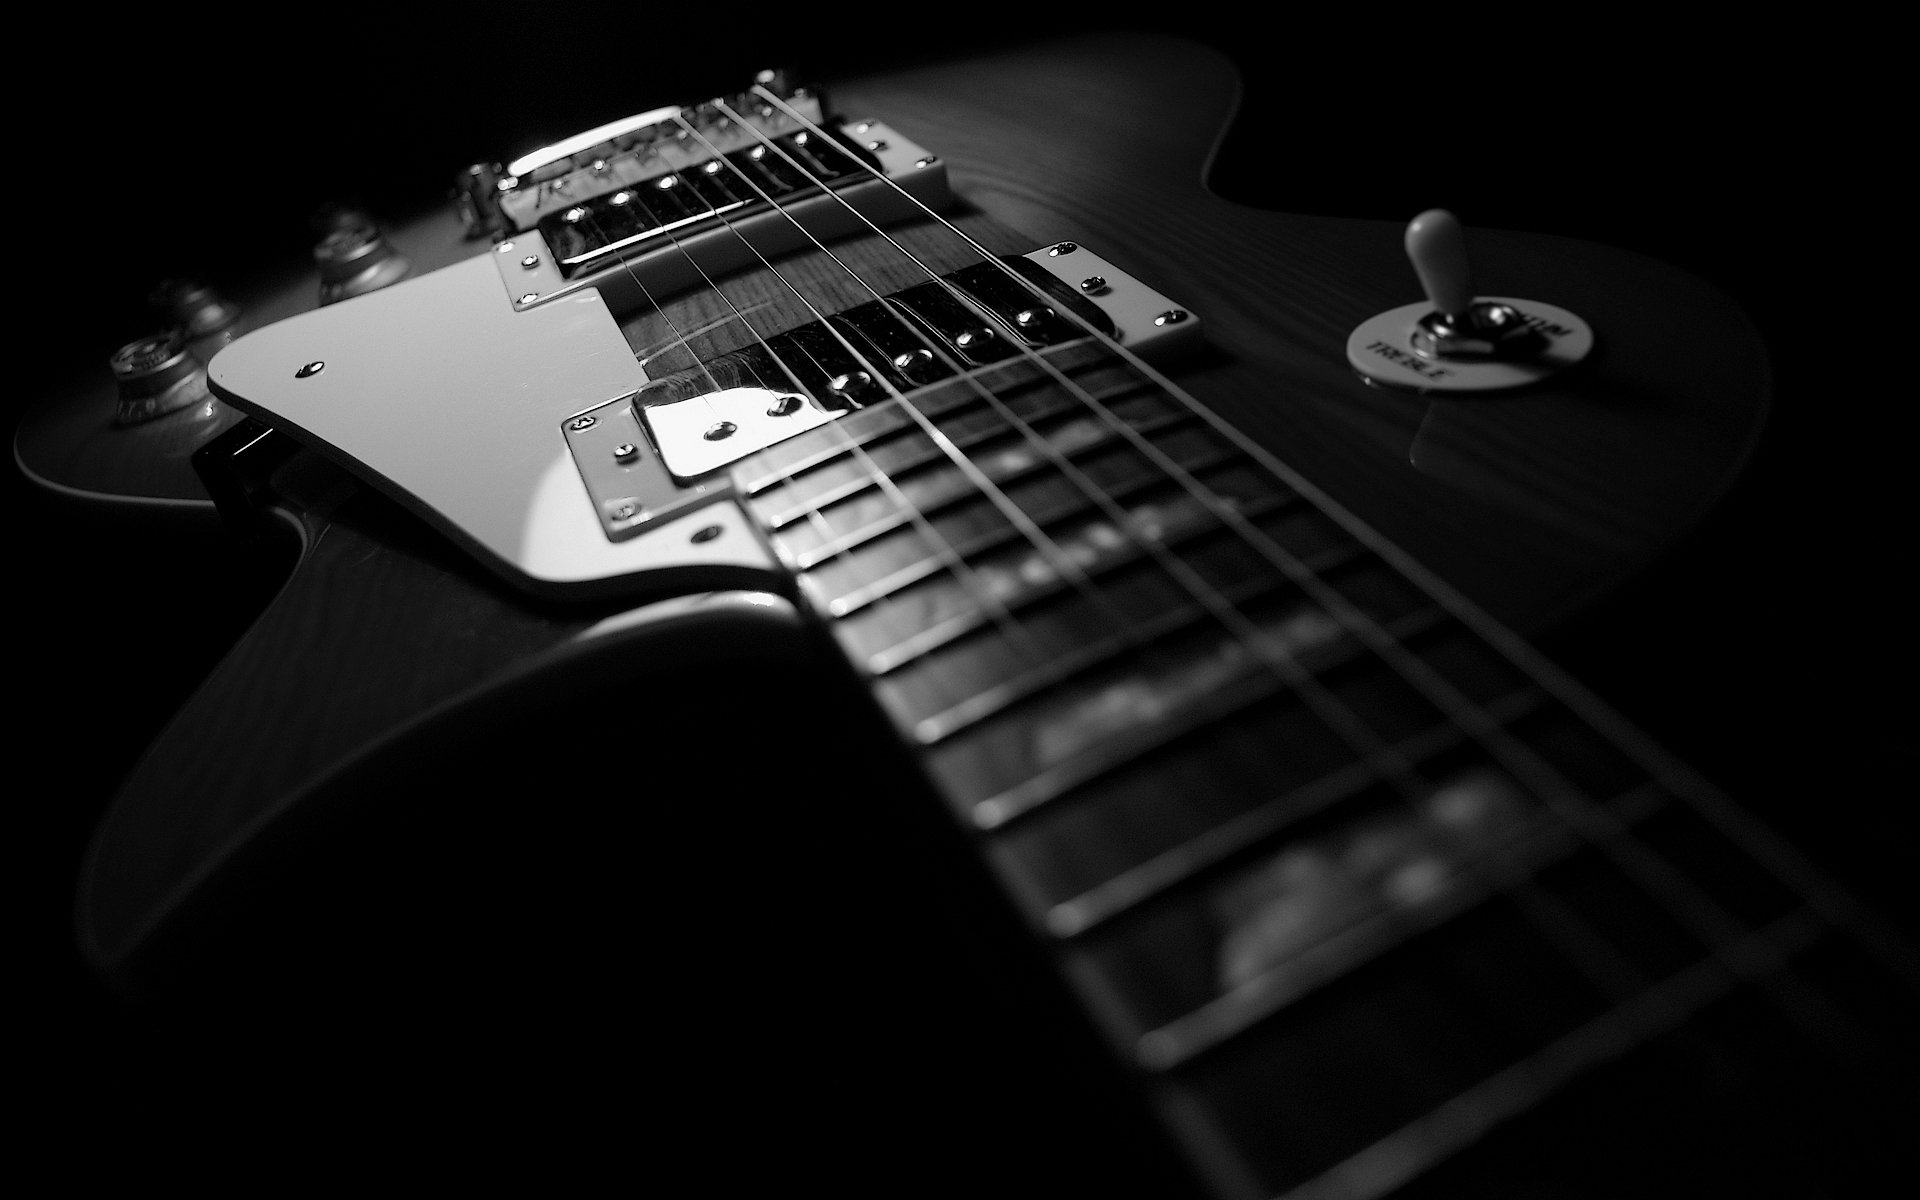 Guitar Image Wallpaper